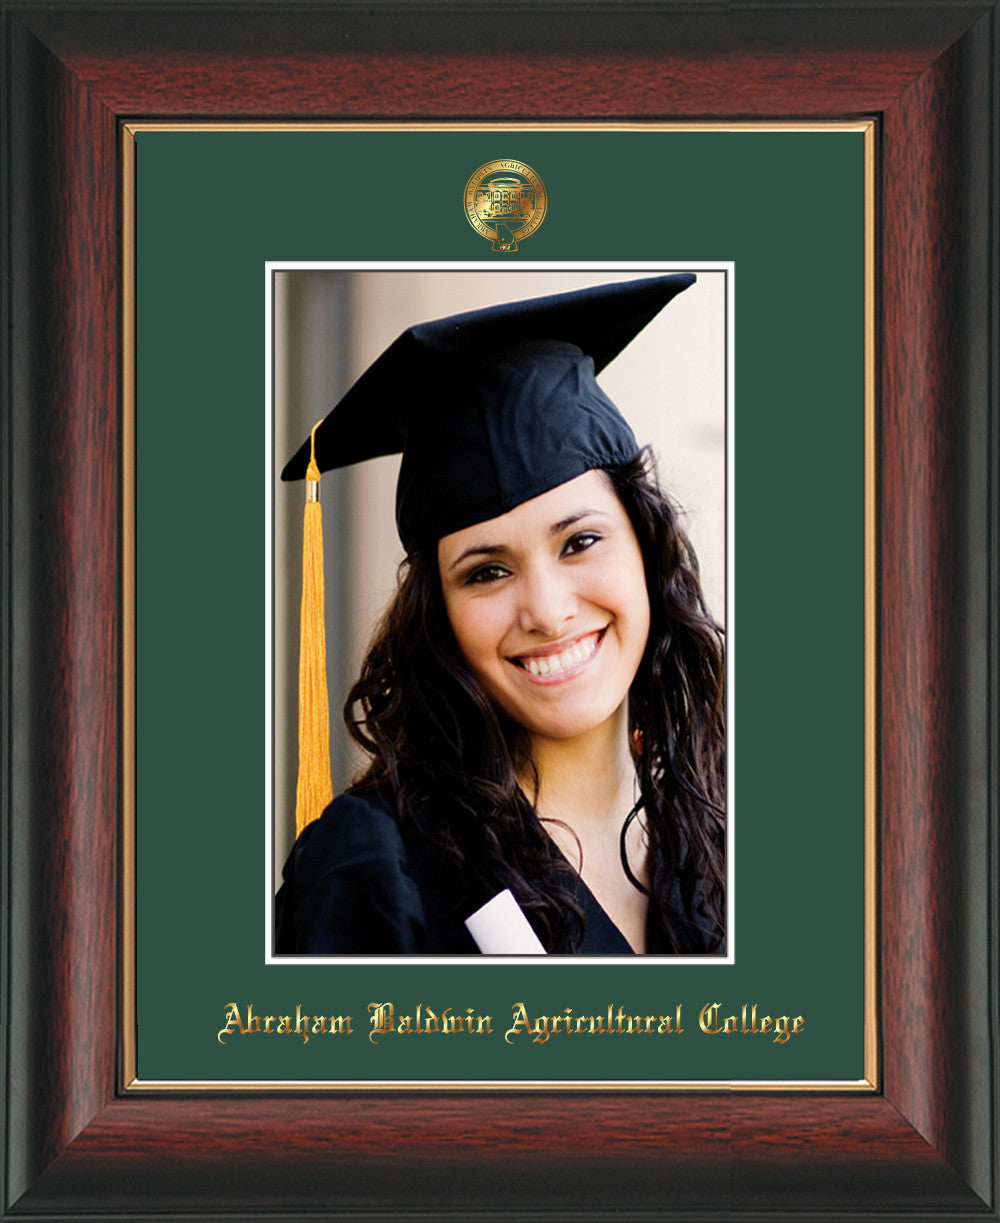 Abraham Baldwin Agricultural College Seal 5 x 7 Photo Frame